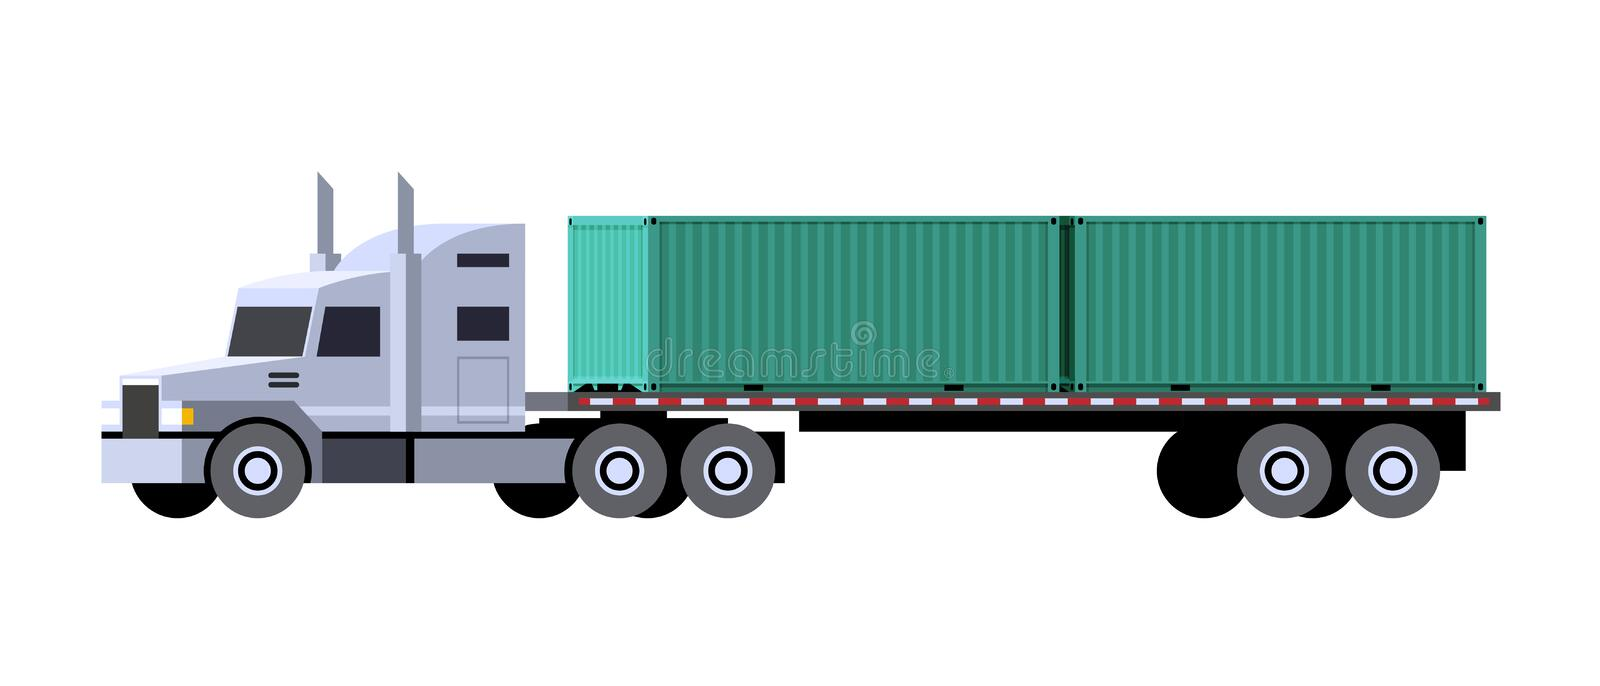 Container tractor truck. Minimalistic icon tractor truck with semi trailer containers. Front side view. Container vehicle. Vector isolated illustration stock illustration